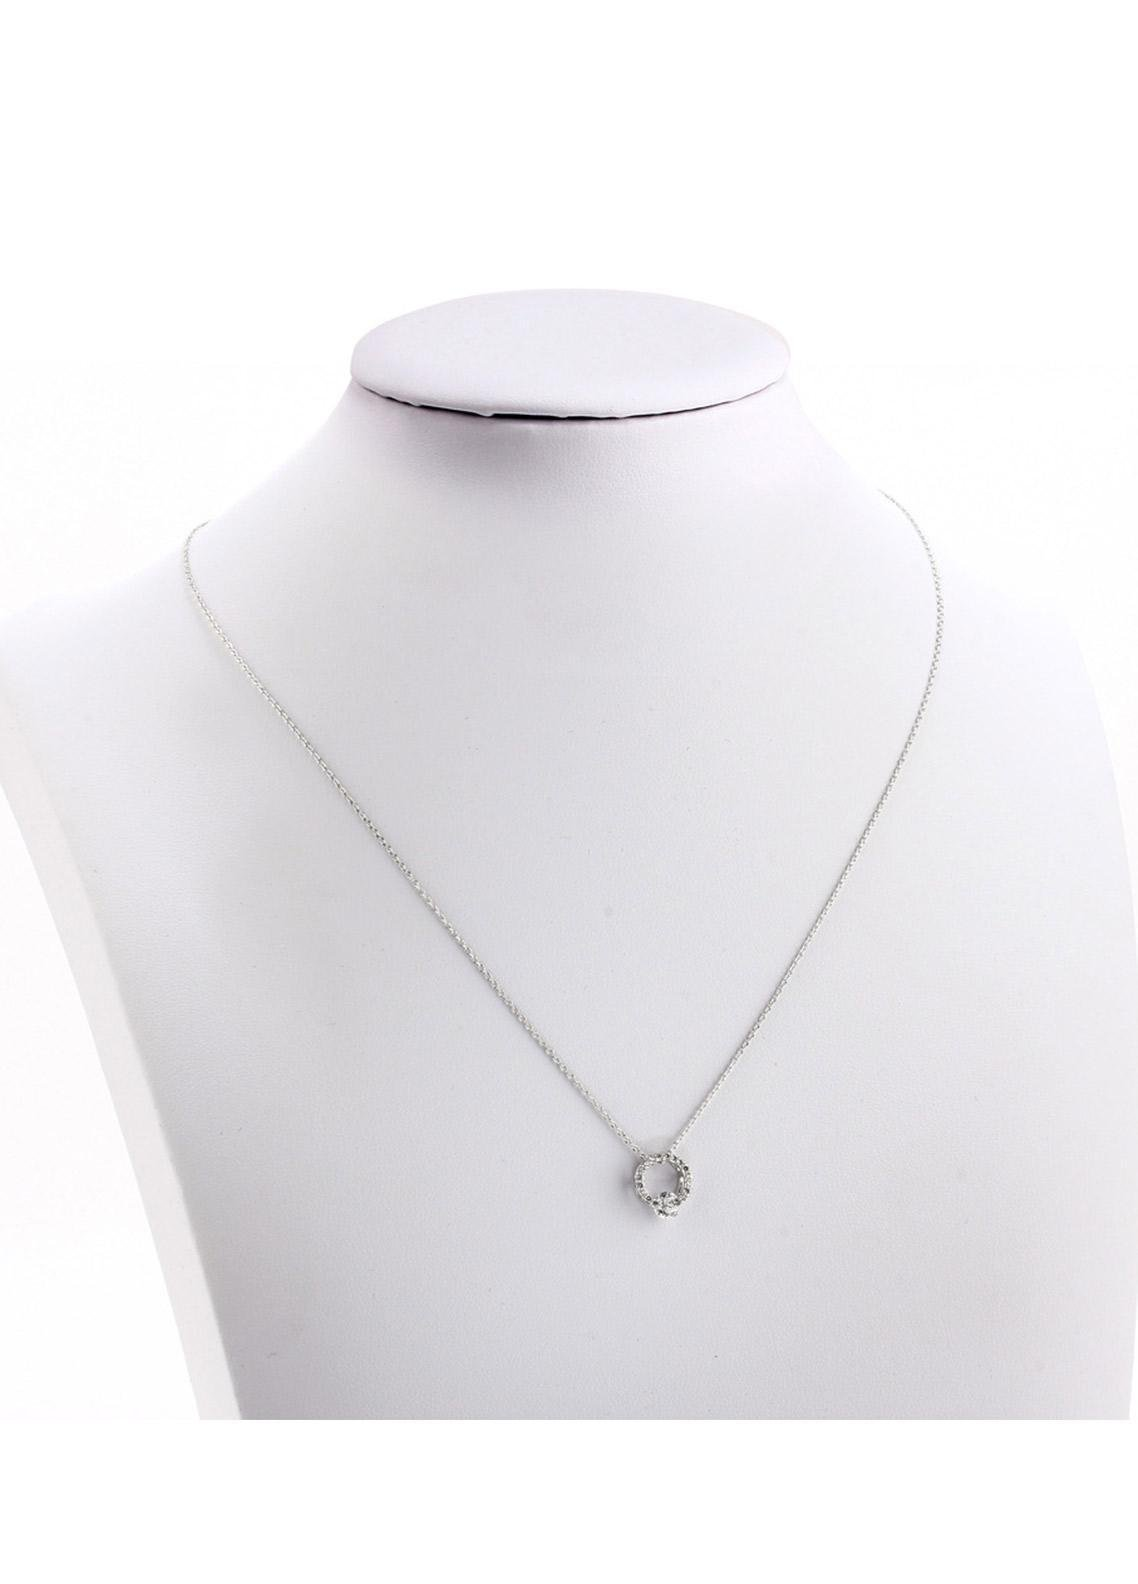 Anna Grace London by Silk Avenue Silver Plated Crystal Circle Necklace AGN0047 - Ladies Jewellery